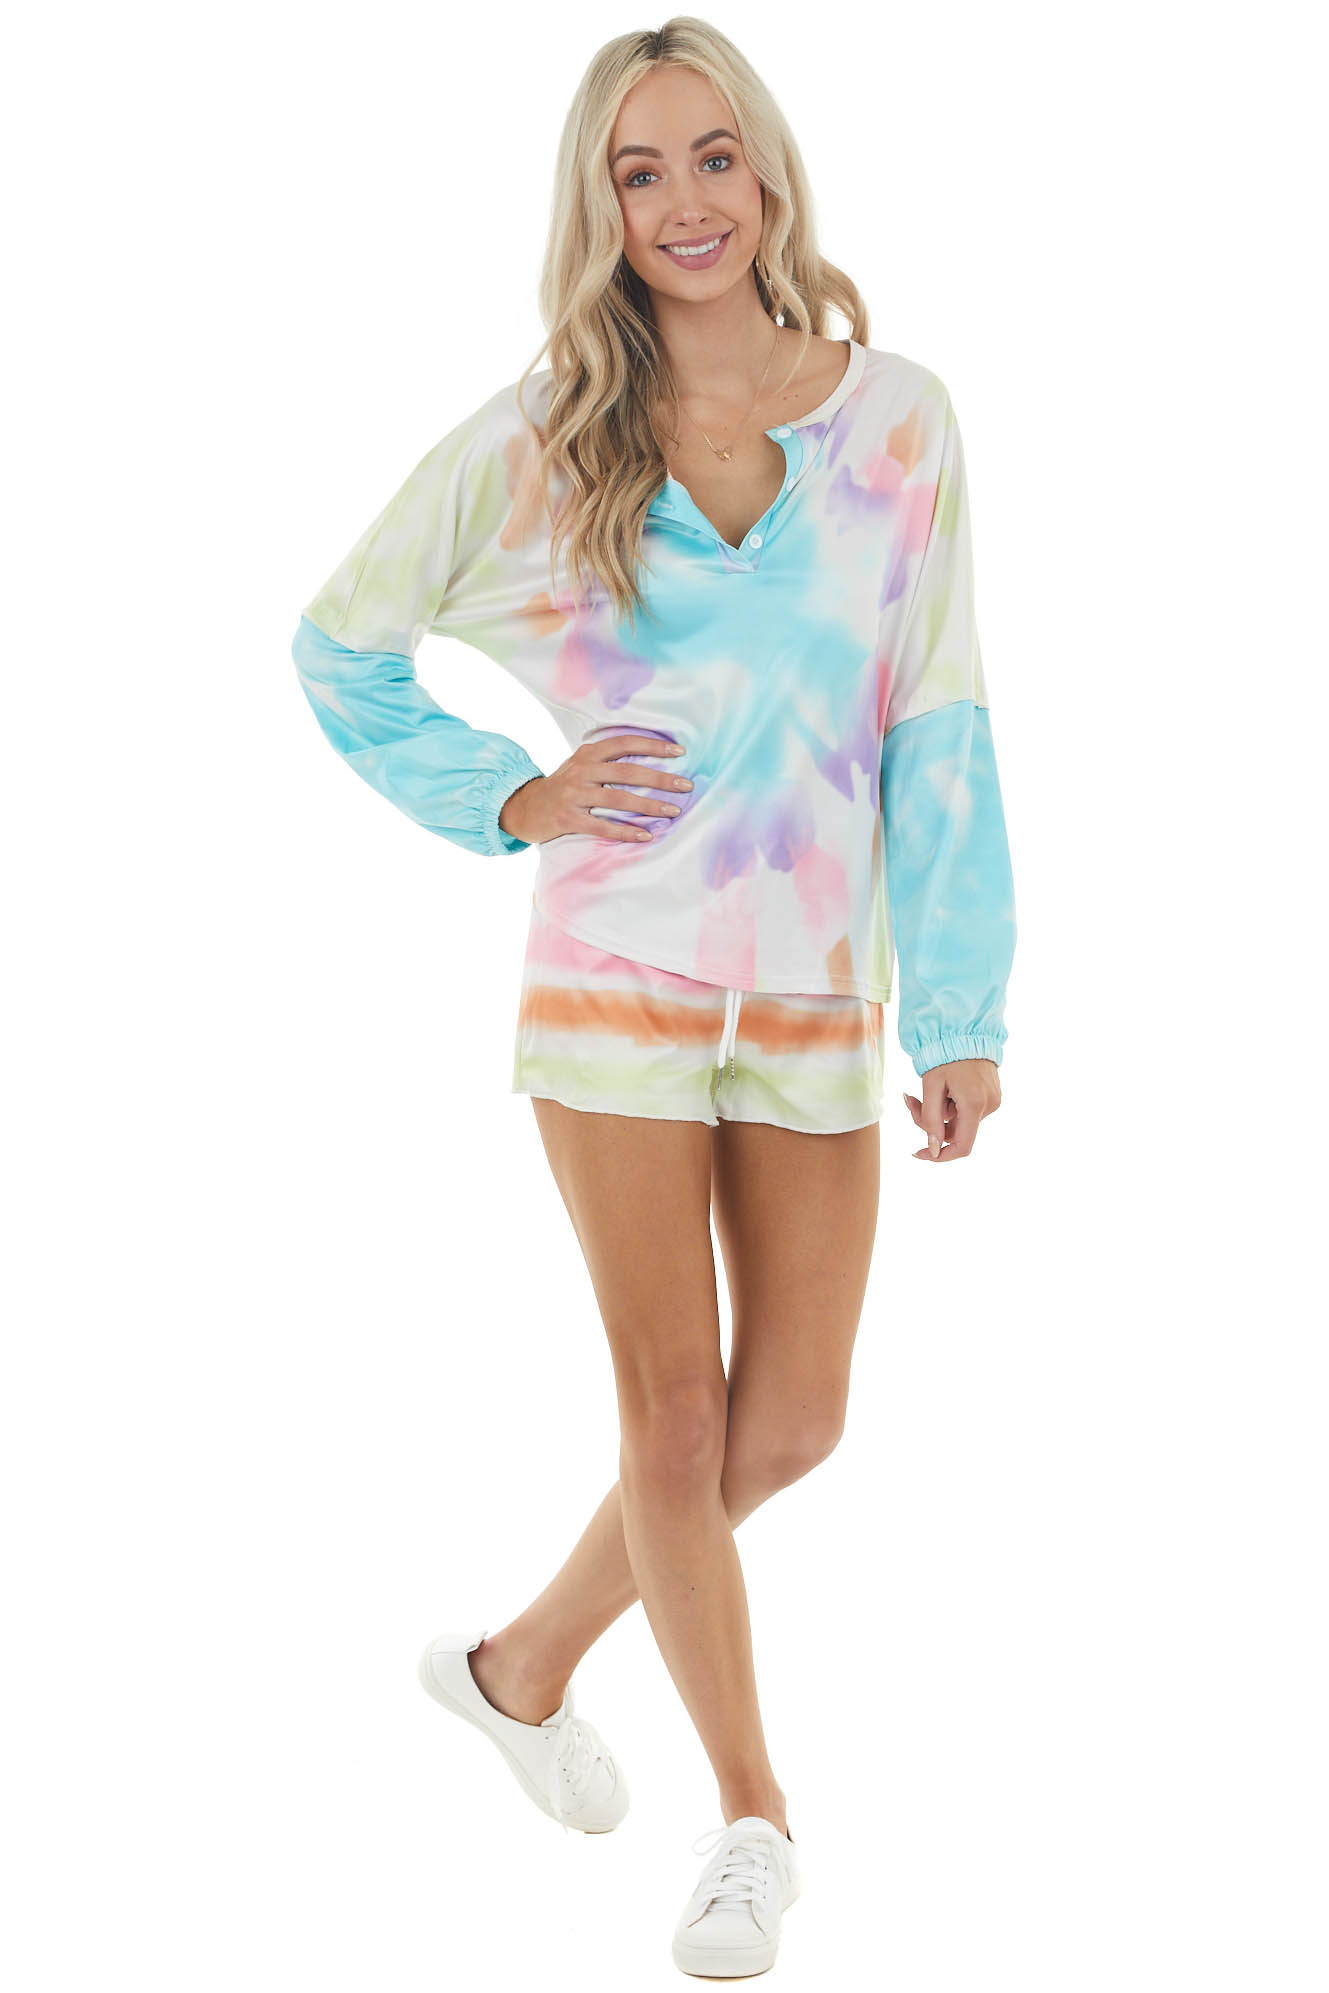 Turquoise and Carnation Tie Dye Top and Shorts Set